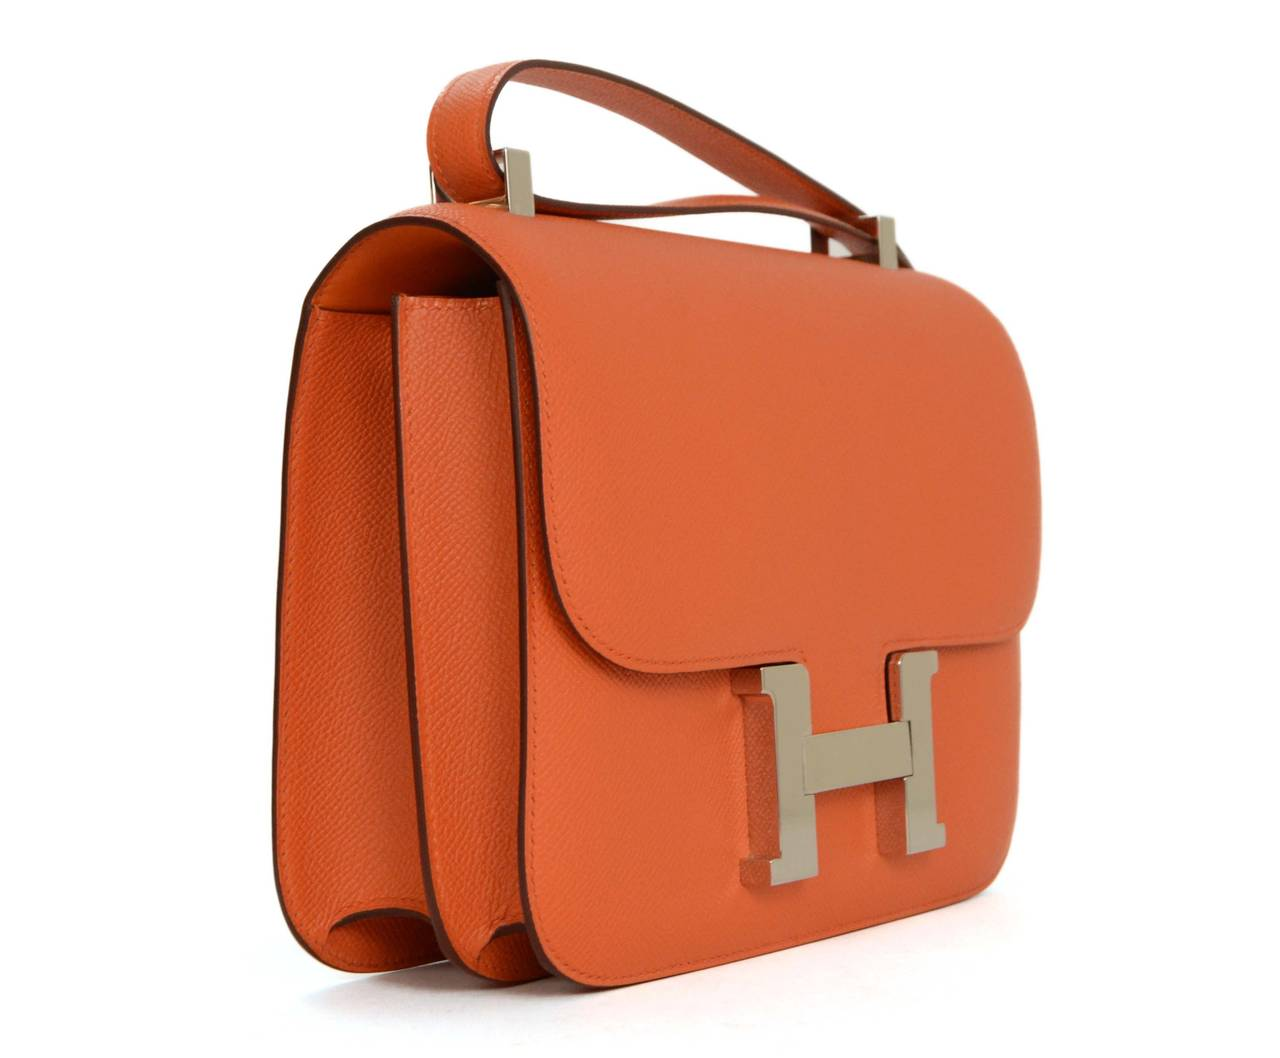 birkins bag price - Hermes Orange Epsom 24cm H Constance Bag PHW at 1stdibs